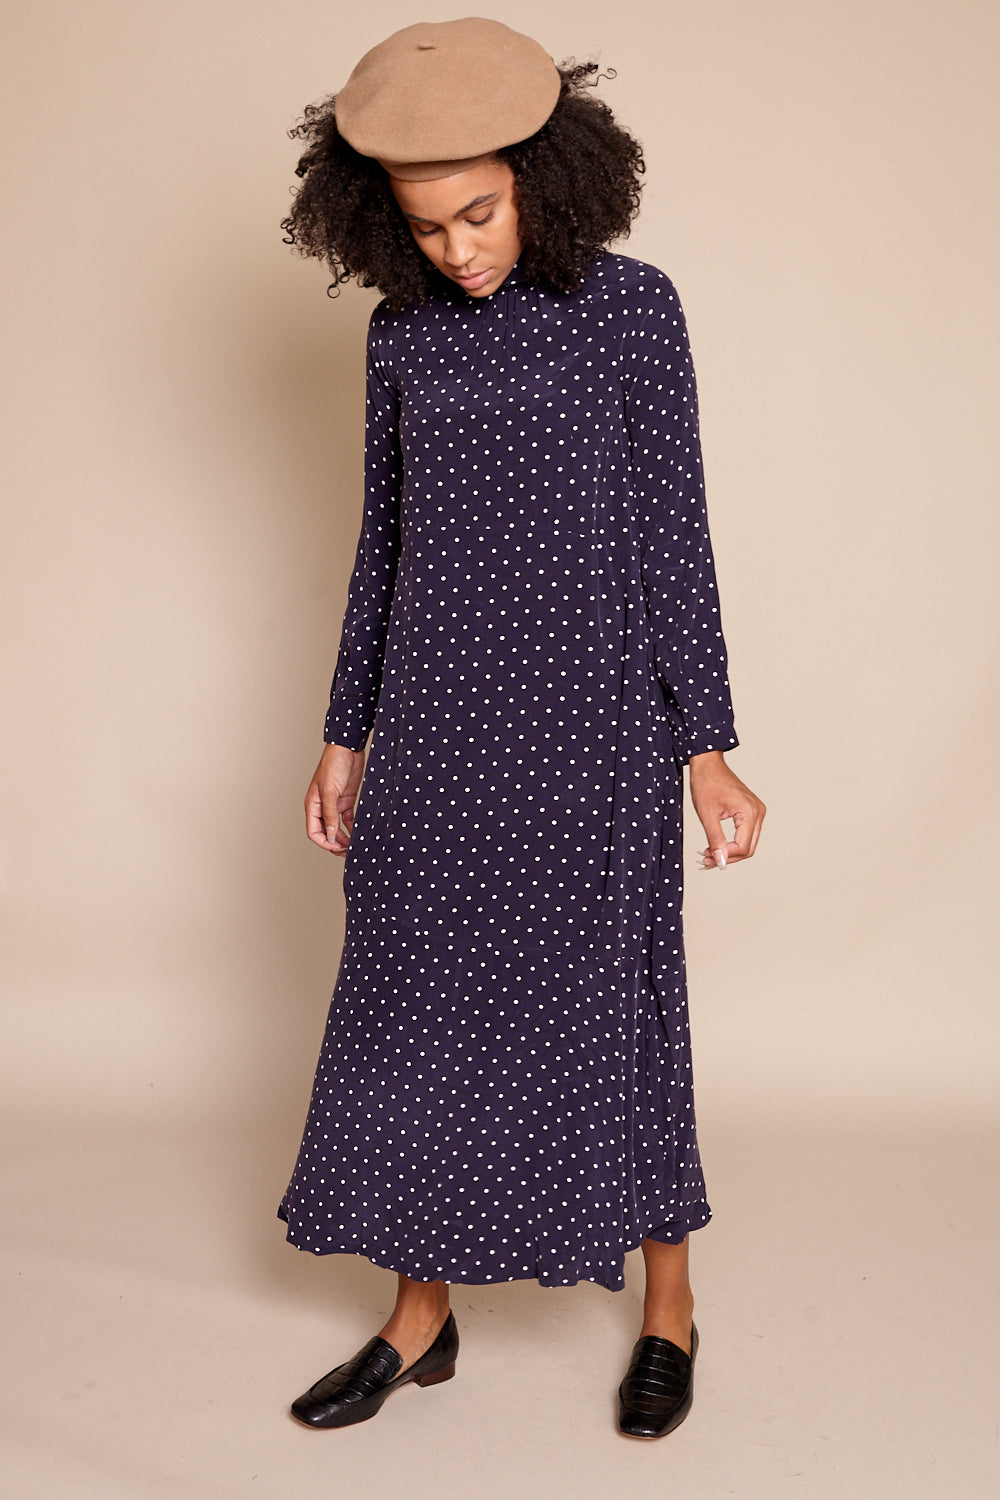 Maria Stanley Jordan Dotted Dress in Dotted - Vert & Vogue